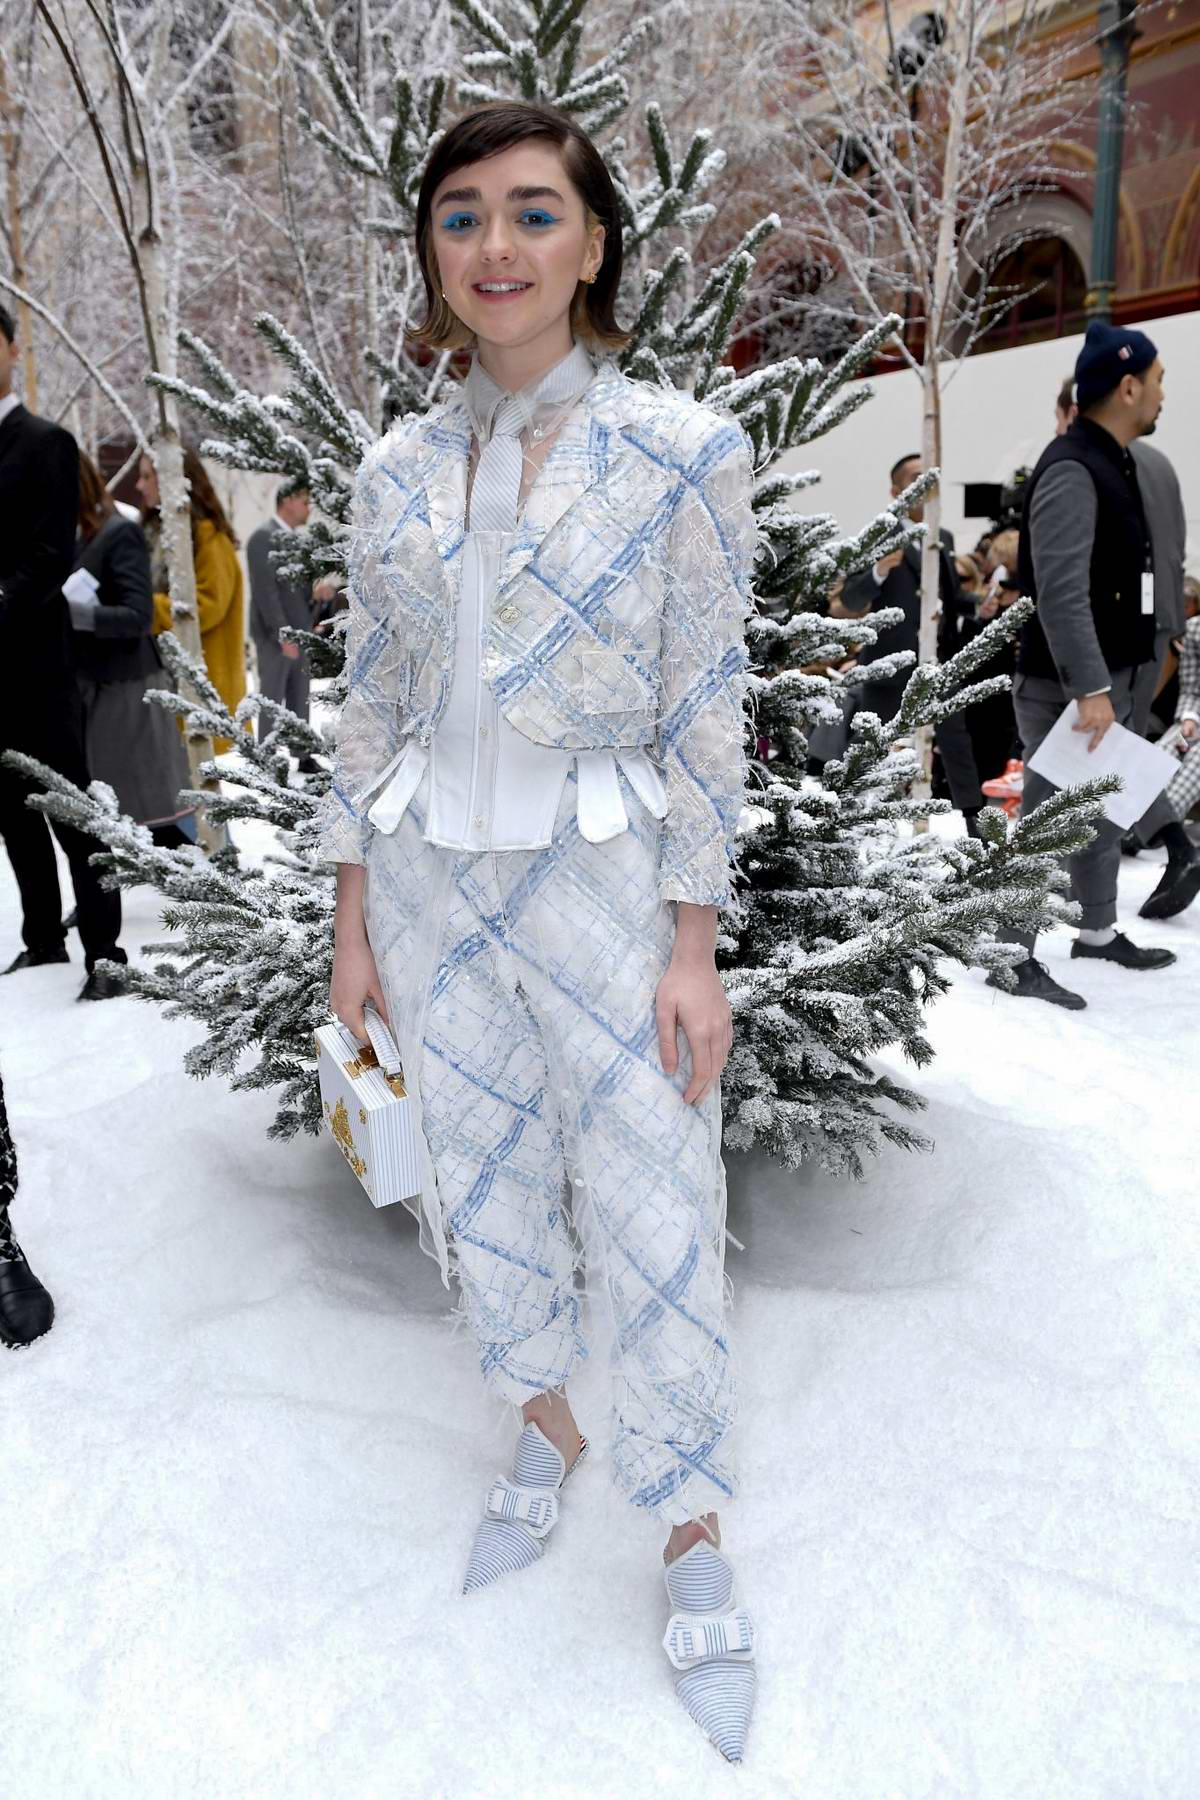 Maisie Williams attends the Thom Browne show, F/W 2020 during Paris Fashion Week in Paris, France